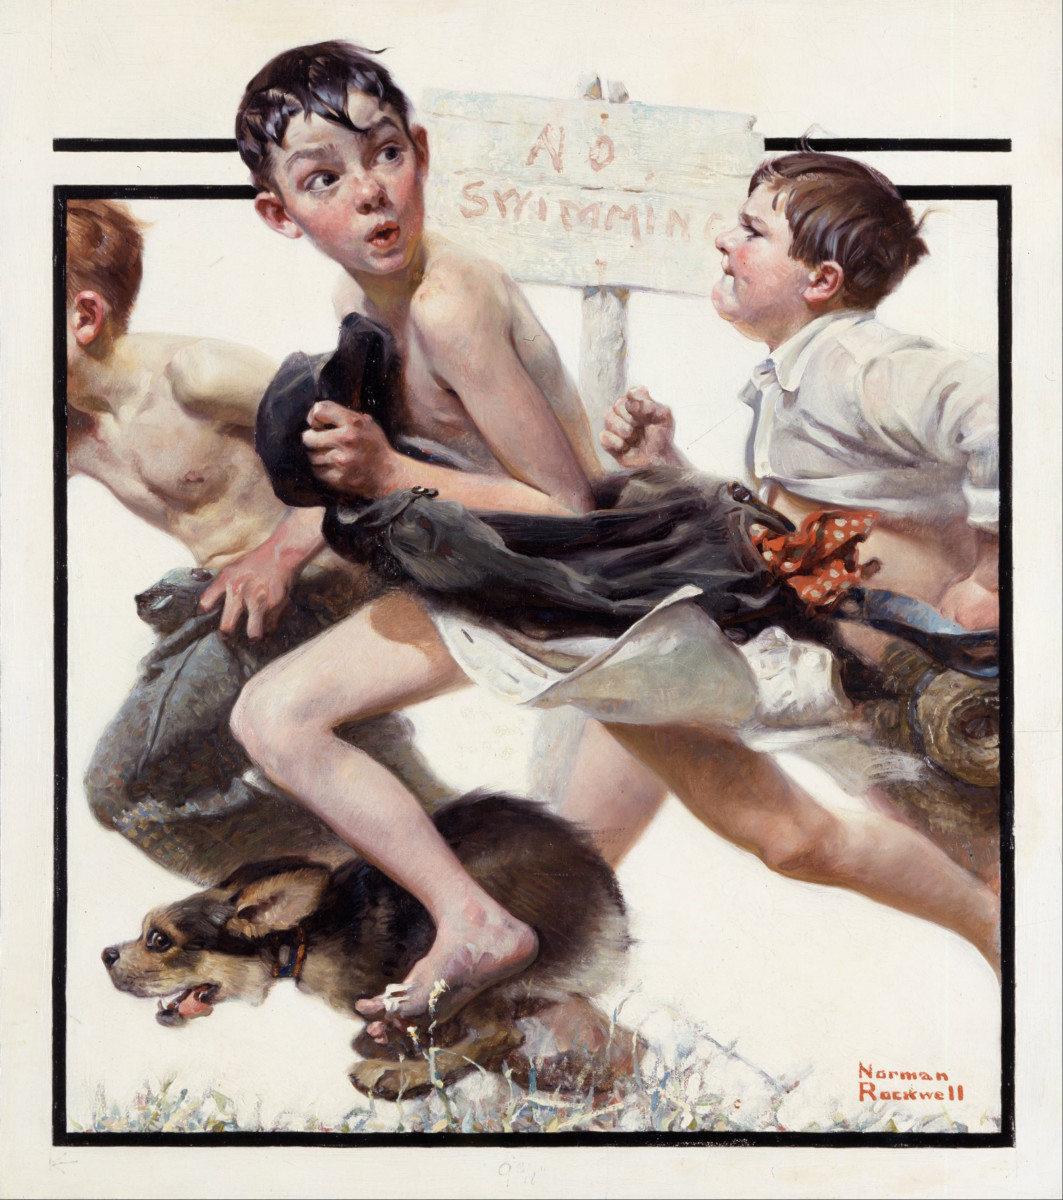 'No Swimming' by Norman Rockwell (circa 1921)